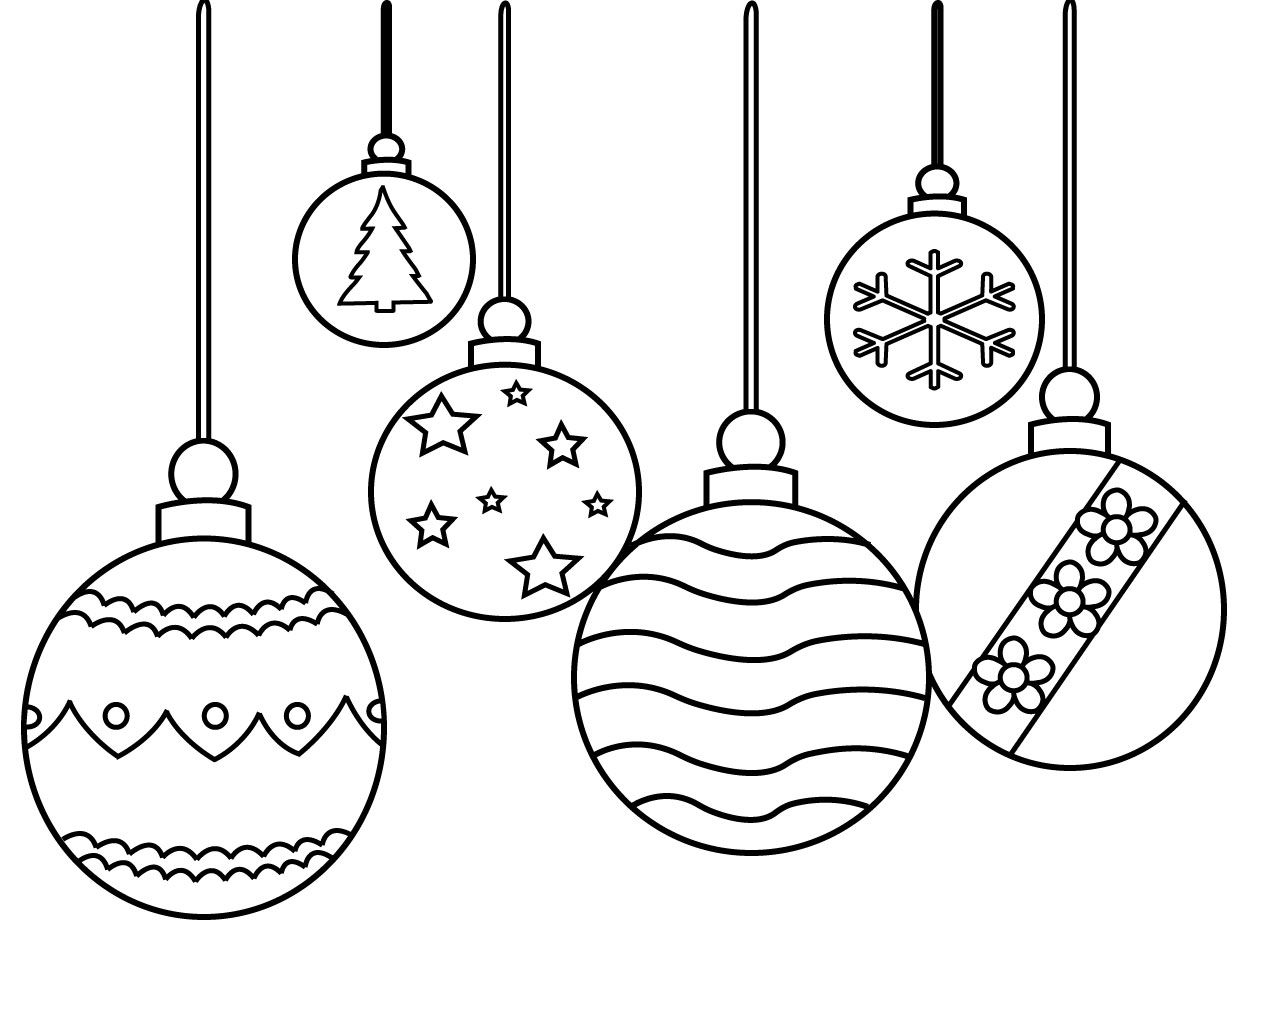 Christmas Ornament Coloring Pages Printable Simple For Preschoolers And Adlut Christmas Ornament Coloring Page Christmas Colors Printable Christmas Ornaments